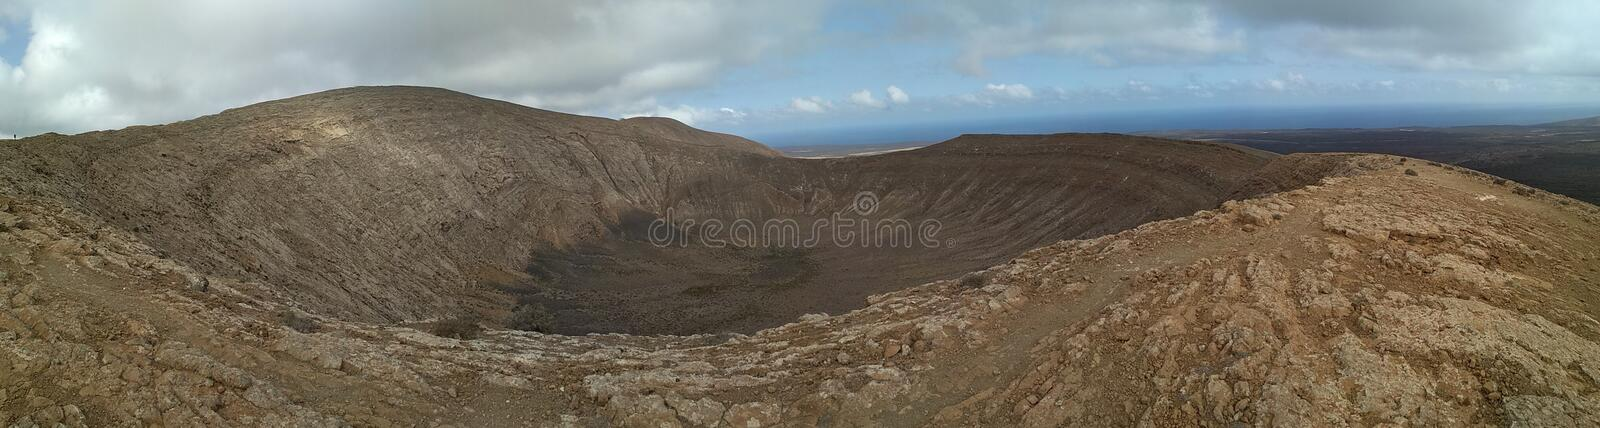 Panoramatic photo of a crater. View from the top of caldera blanca stock images